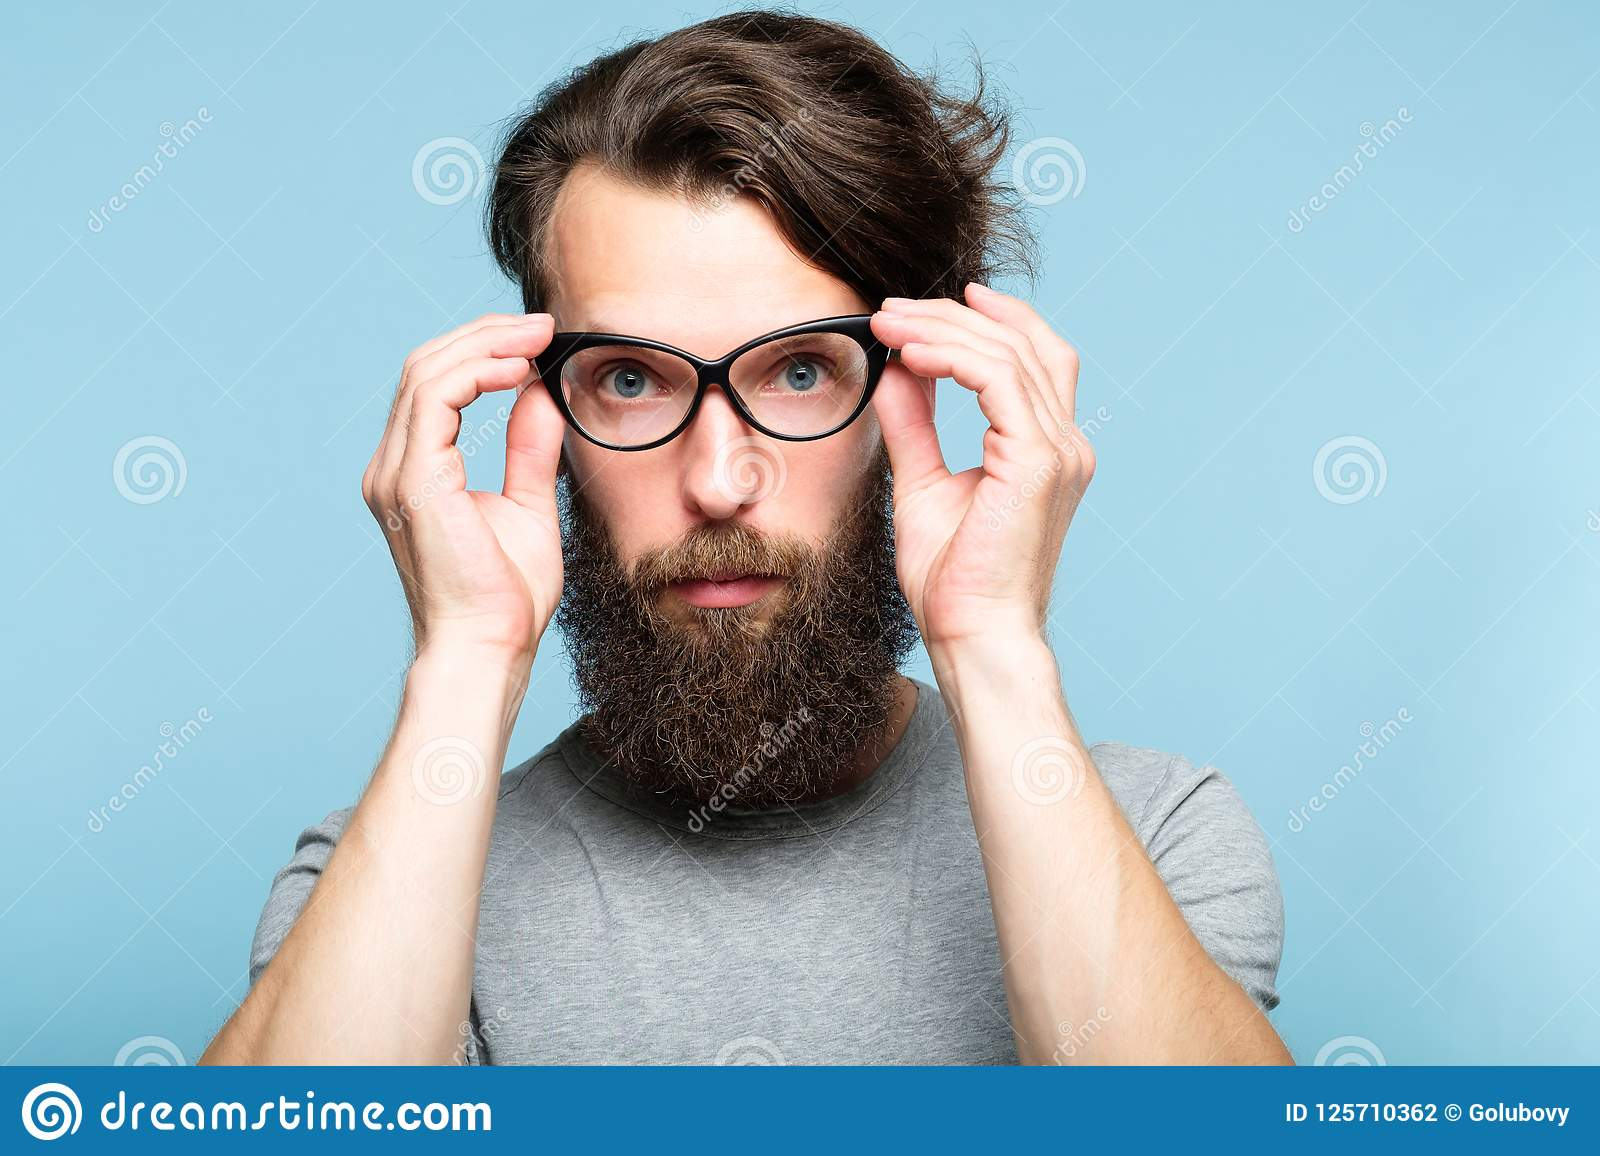 9f876f5ba102 Bearded hipster guy fixing his cat eye glasses. stylish modern fashionist.  portrait of a geeky quirky eccentric man on blue background.